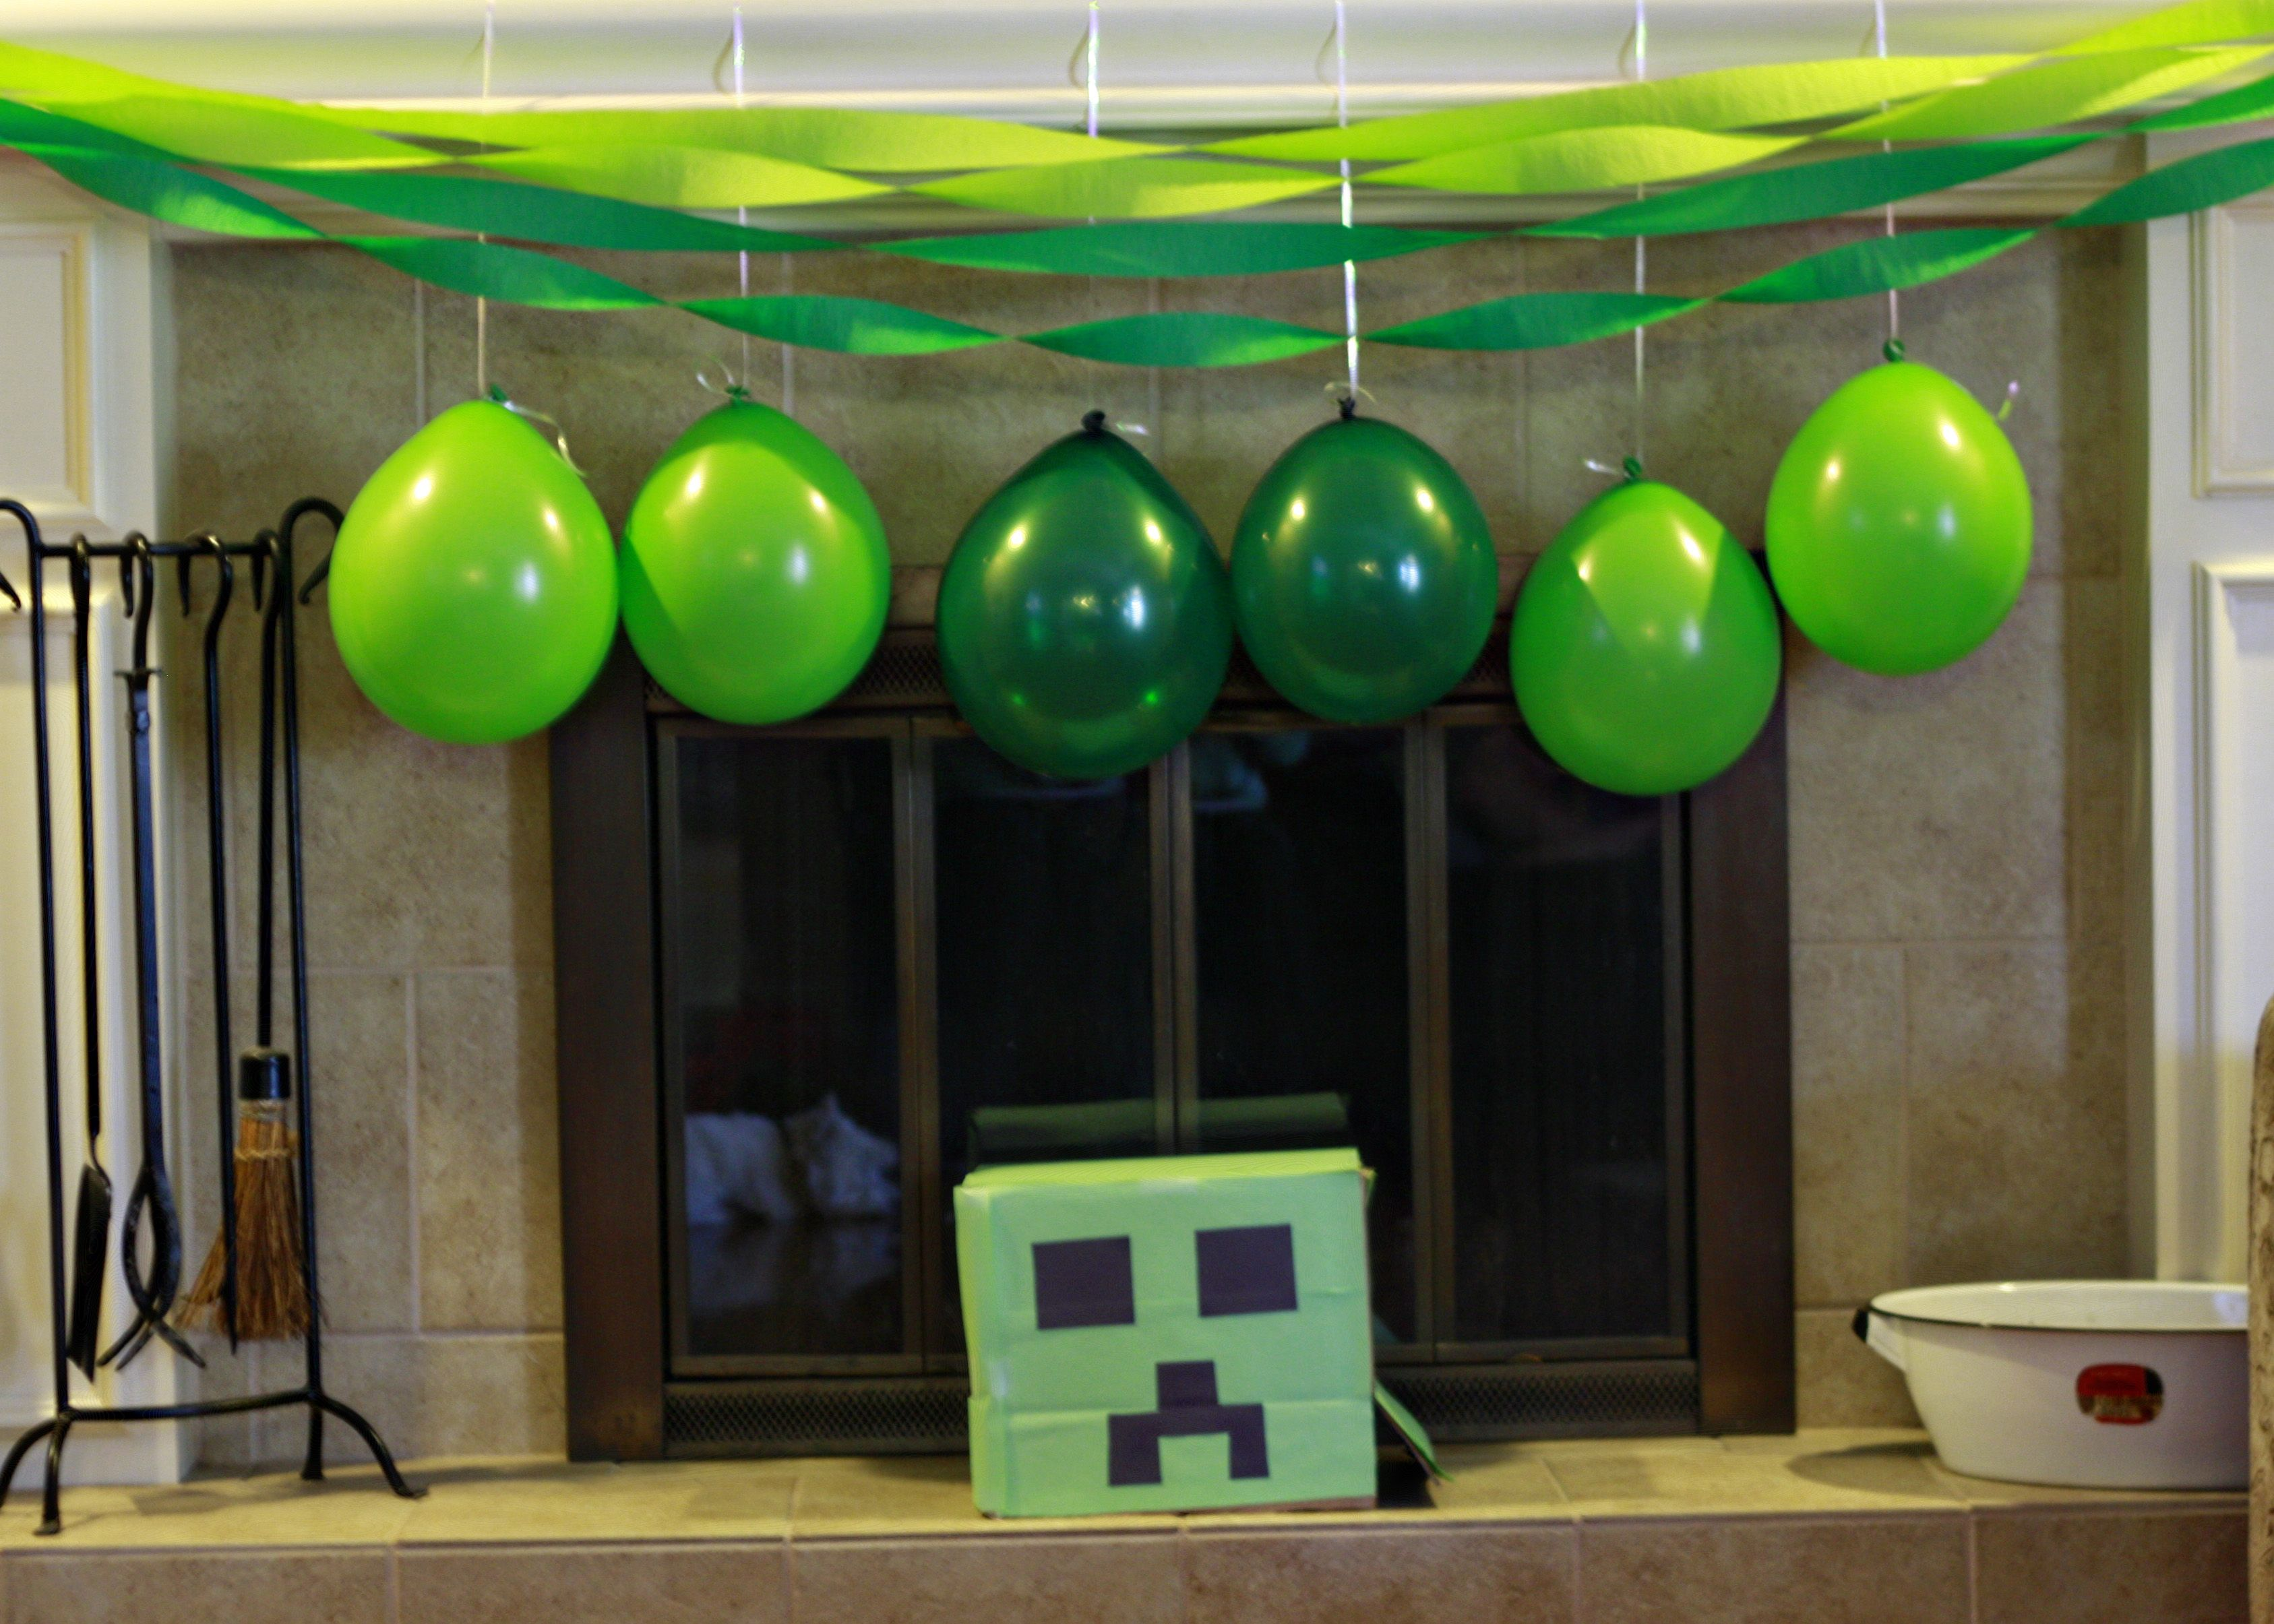 Minecraft Party Decorations Minecraft Party Decorations Minecraft B Day Party Pinterest